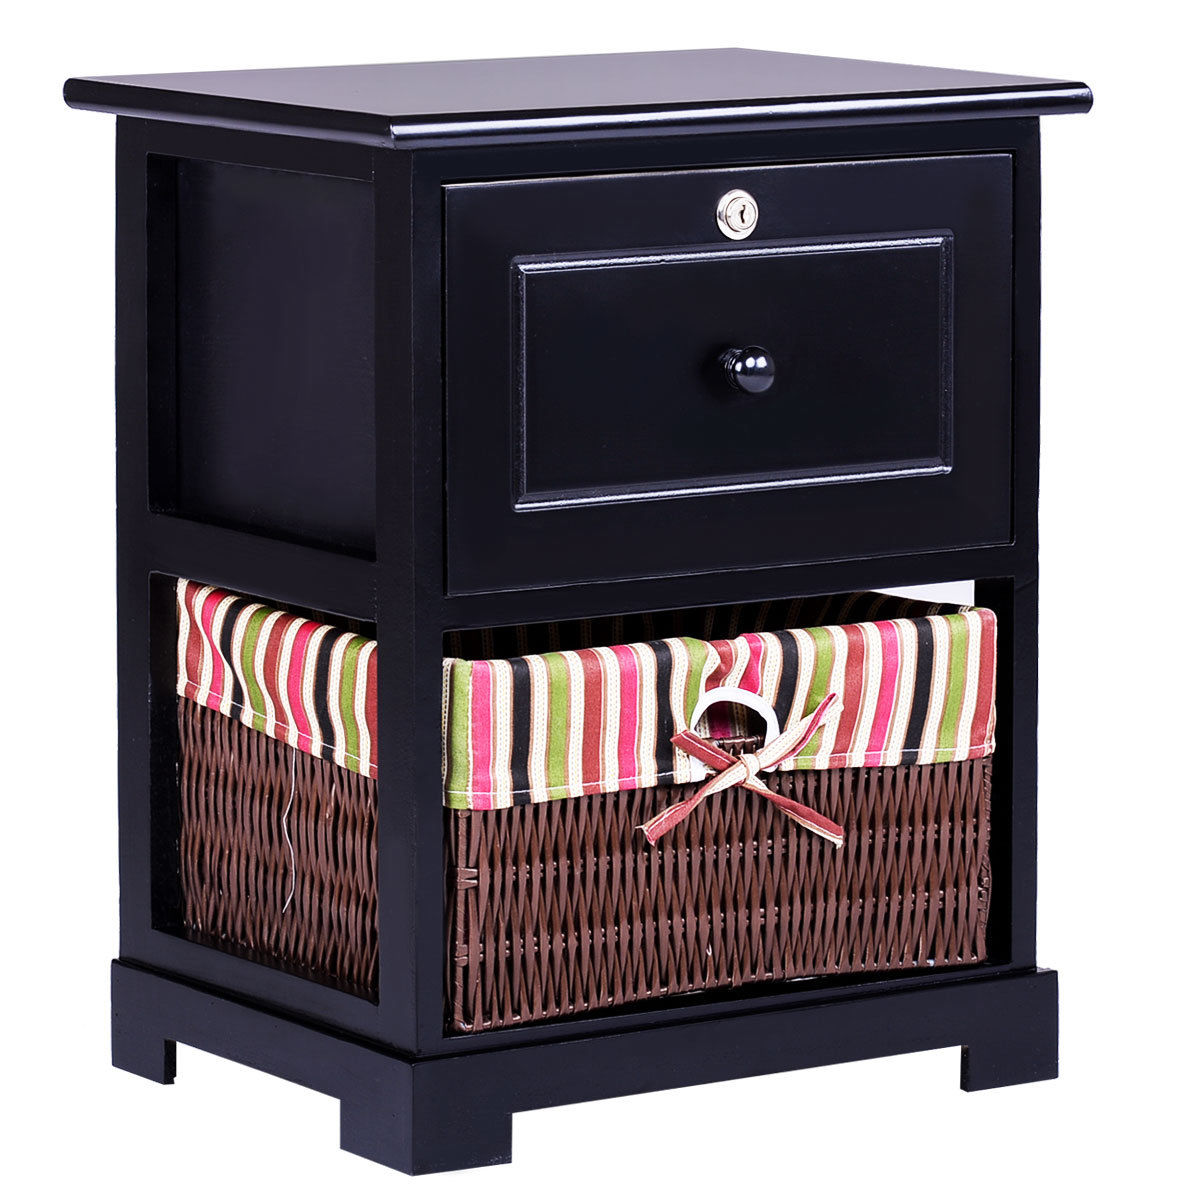 Gymax 2 Tiers Wood Nightstand1 Drawer Bedside End Table Organizer W/ Basket Black